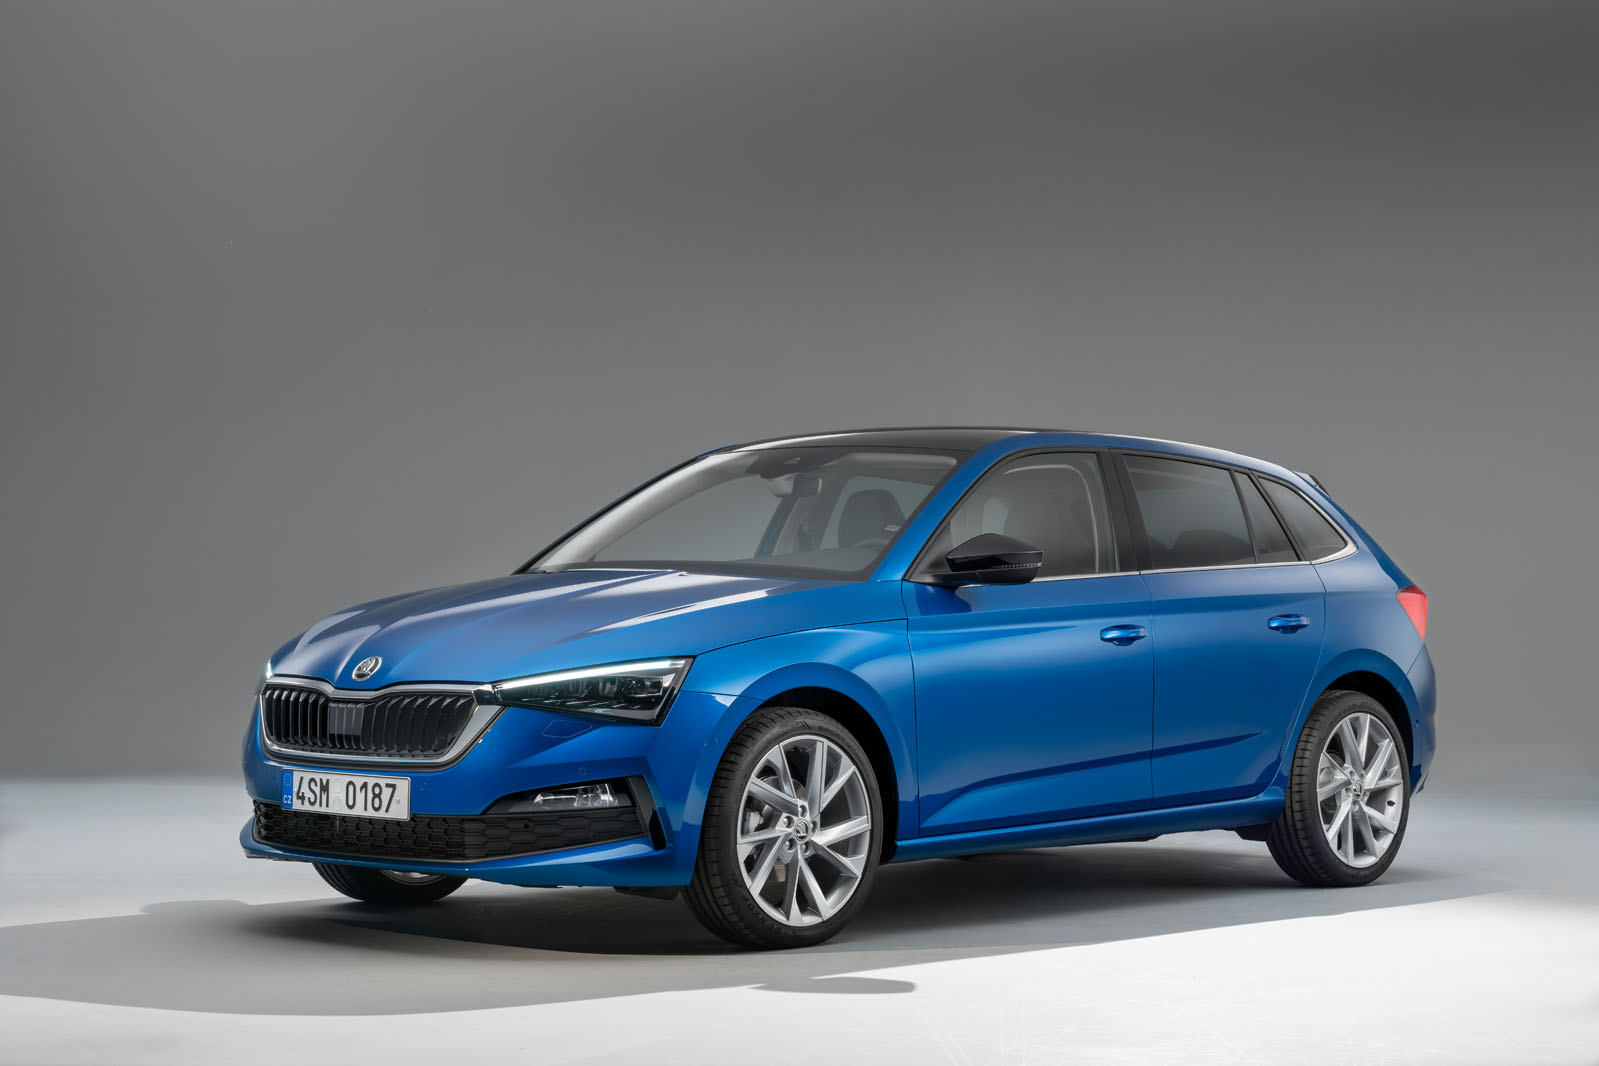 All-new Skoda Scala hatchback unveiled